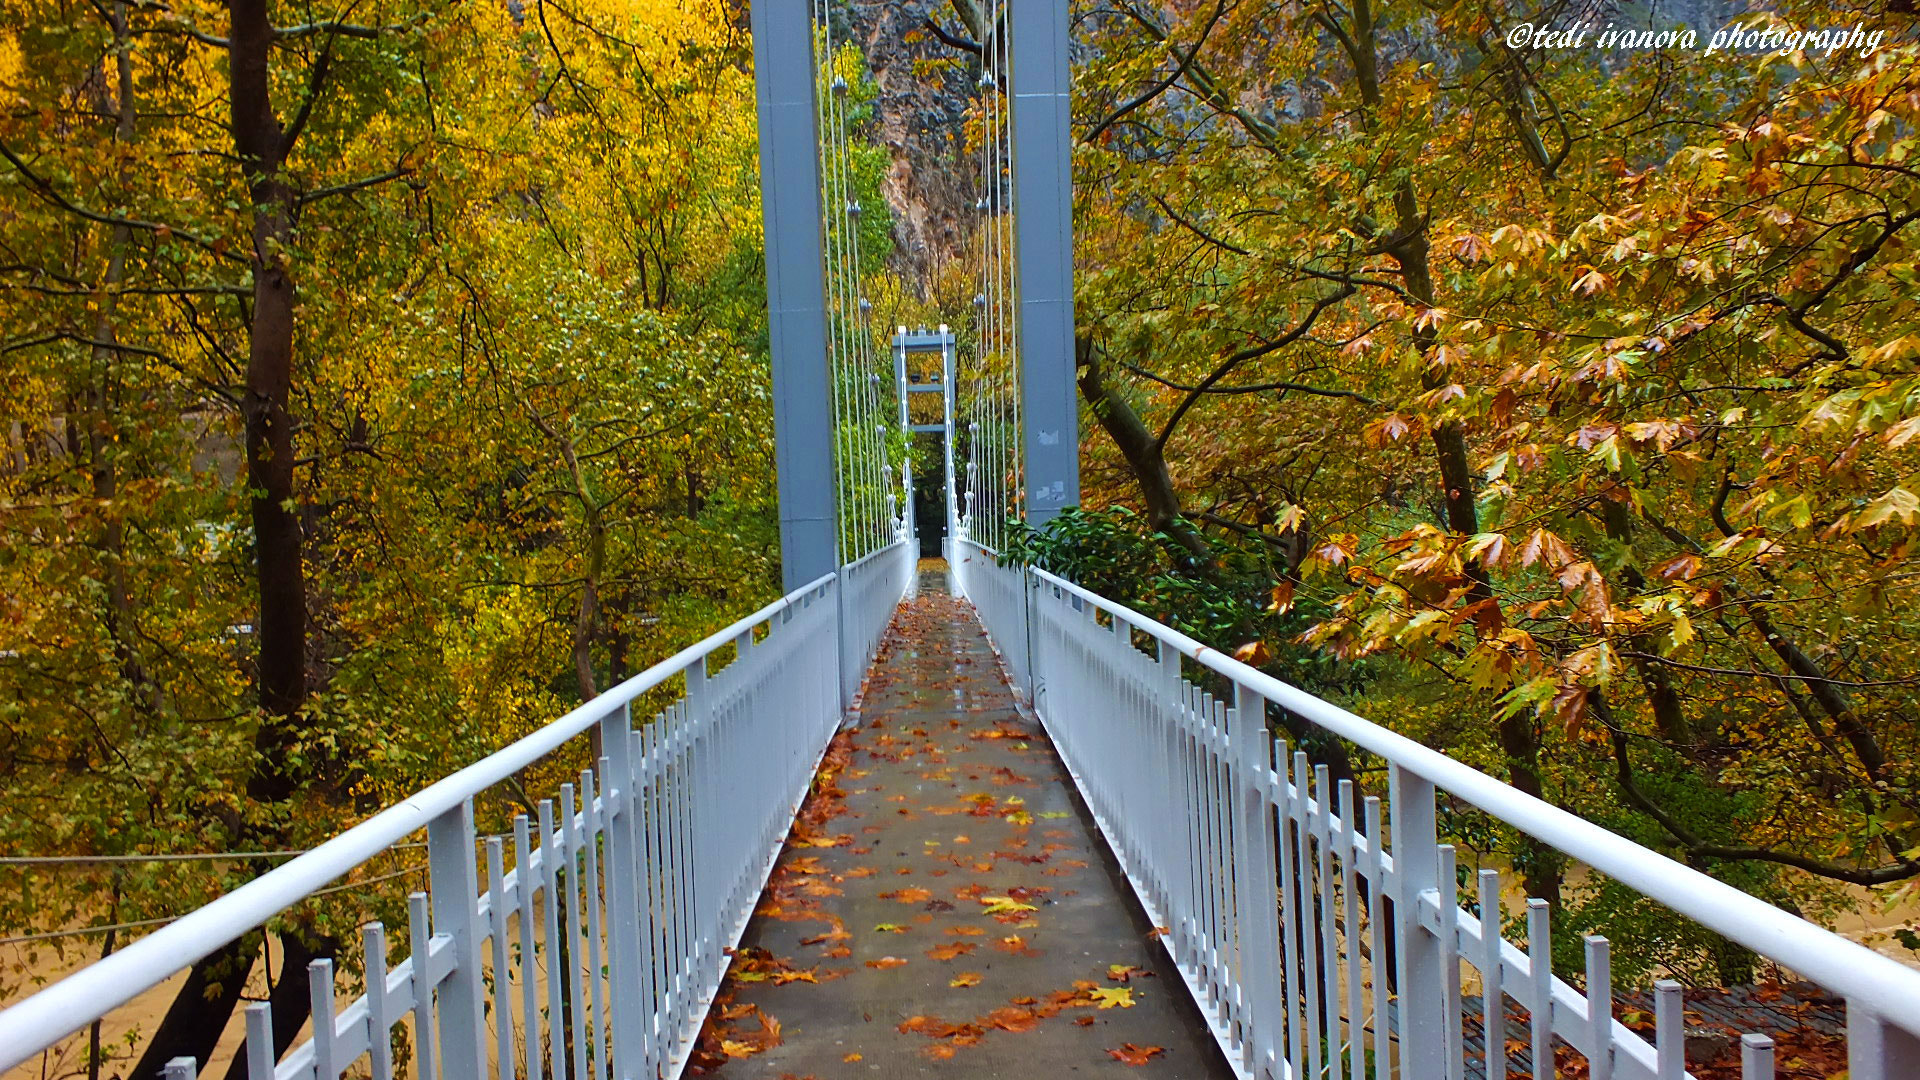 Photograph MY FAVORITE BRIDGE IN AUTUM by Tedi  Ivanova on 500px